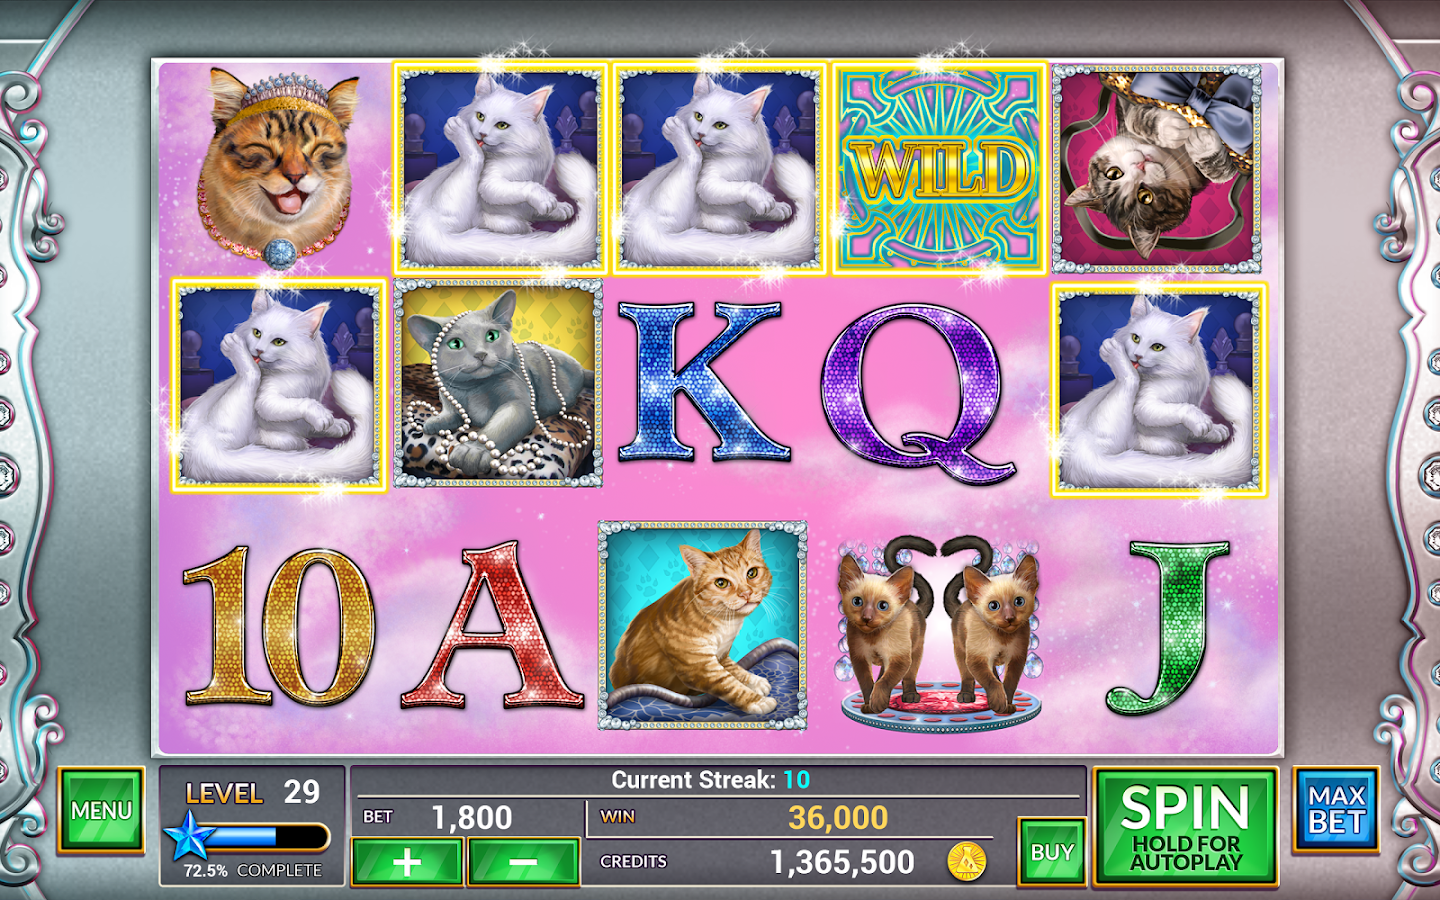 Lucky Tango Online Slot Machine Review - Play for Free Spins